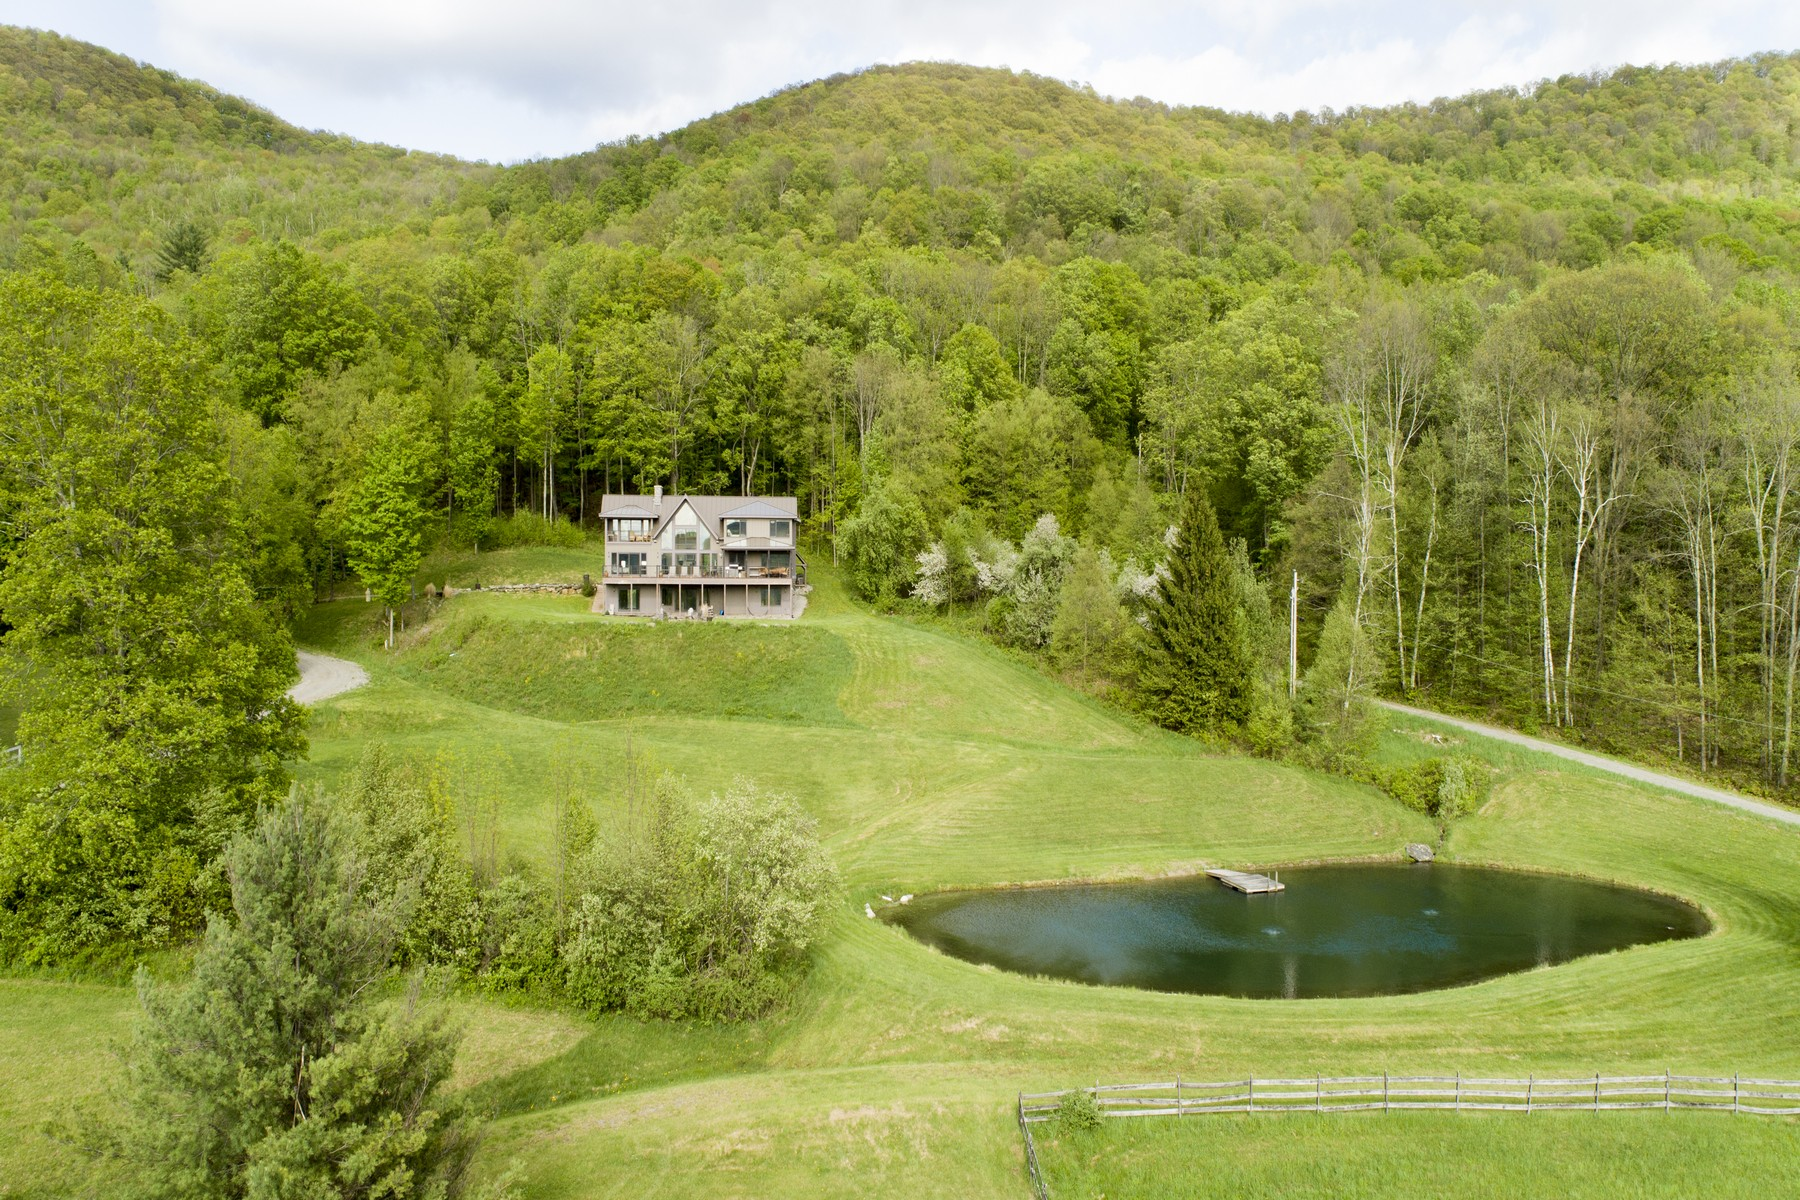 single family homes for Sale at 1881 Herrick Brook Road, Pawlet 1881 Herrick Brook Rd Pawlet, Vermont 05761 United States